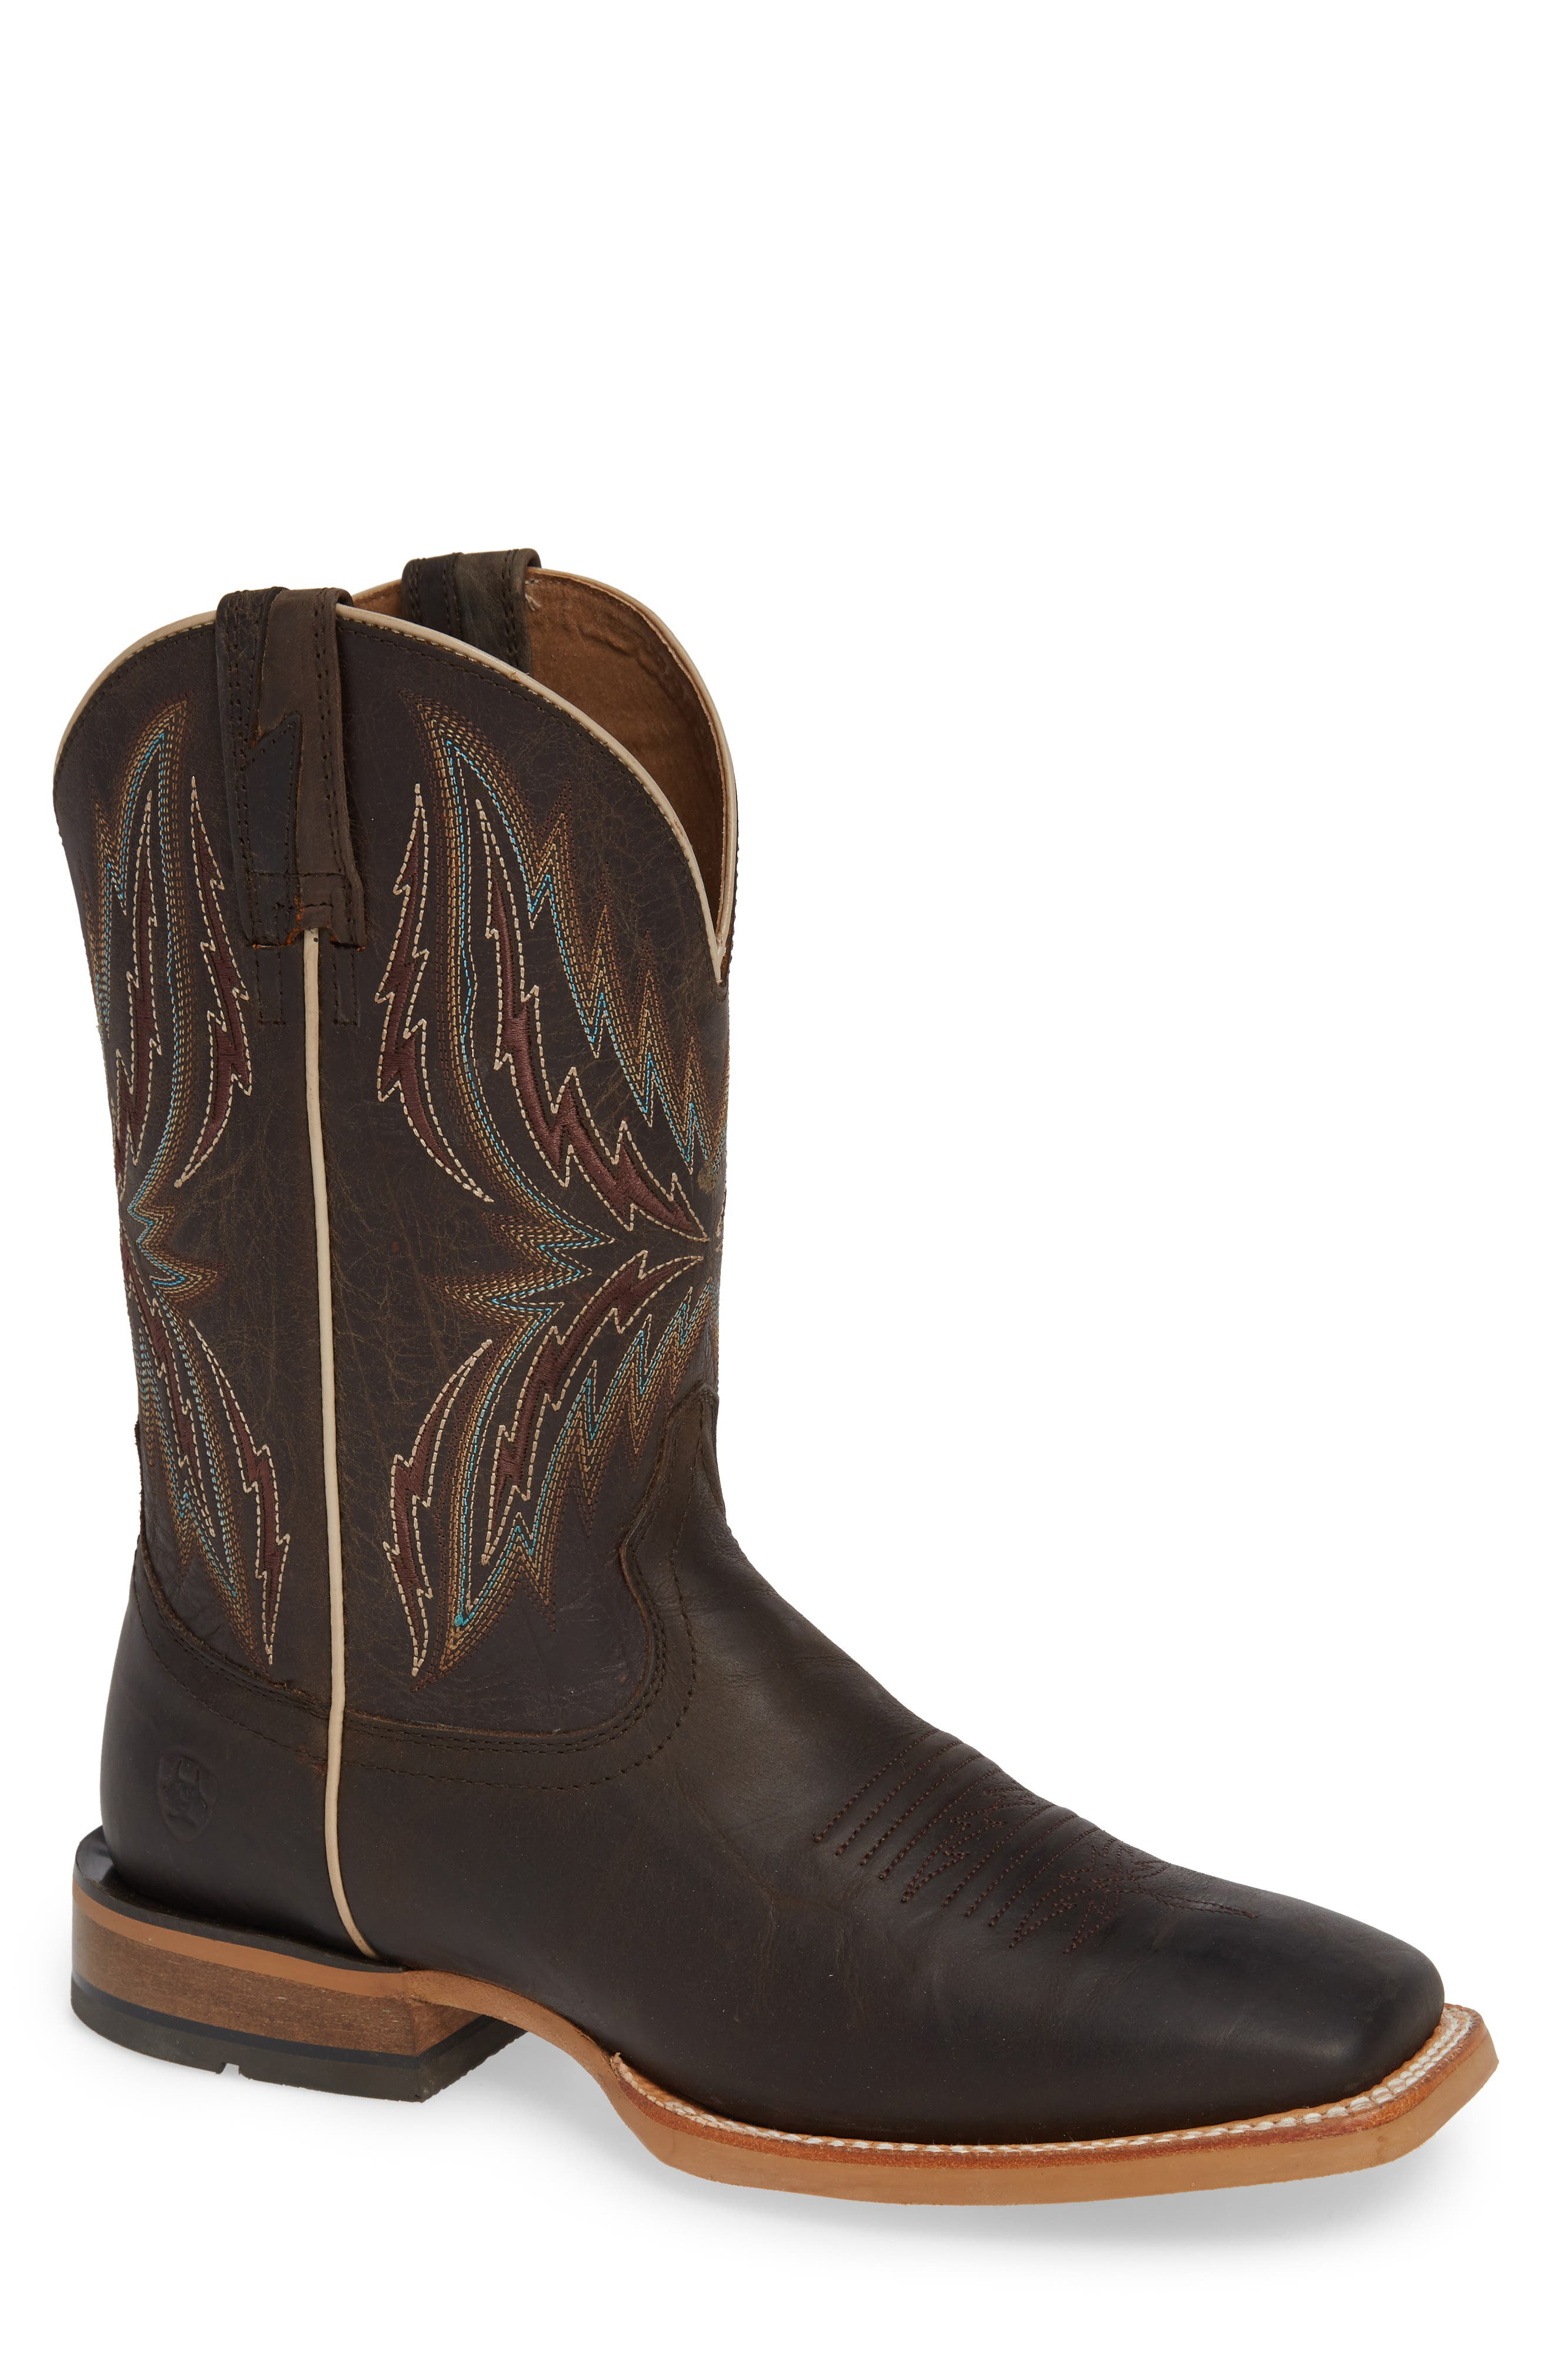 Ariat Arena Rebound Cowboy Boot, Brown